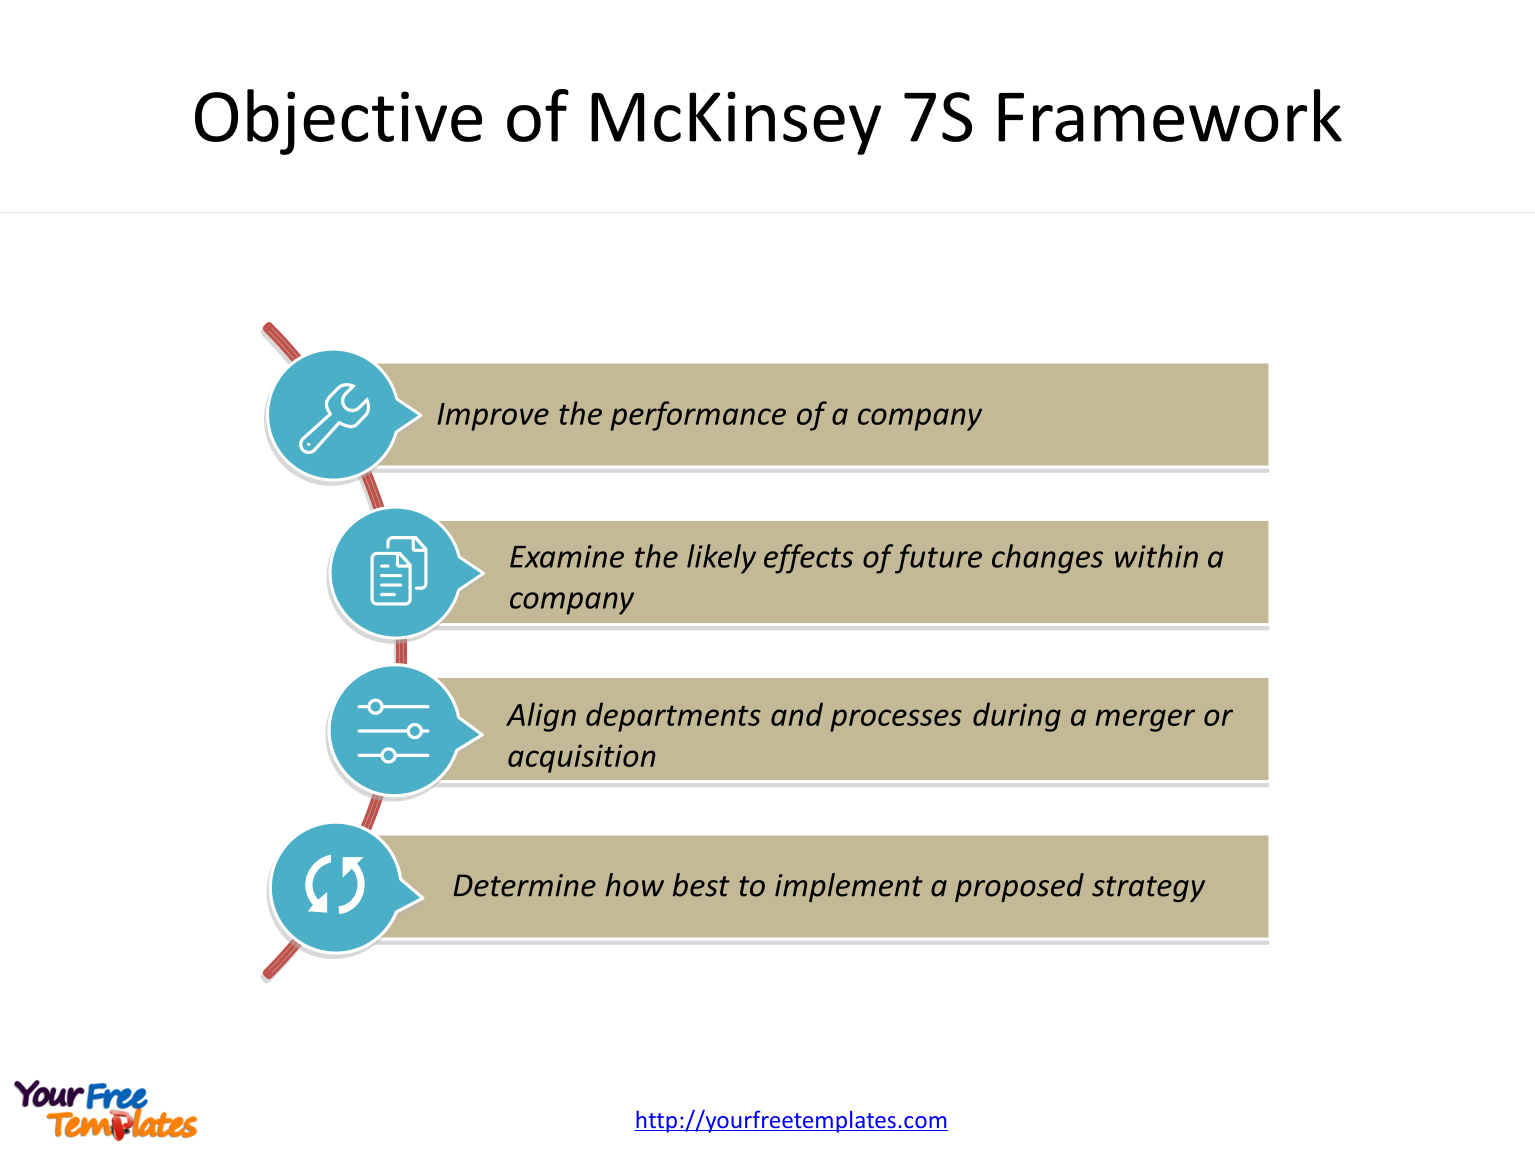 McKinsey 7S Framework of structure, strategy, systems, skills, style, staff and shared values